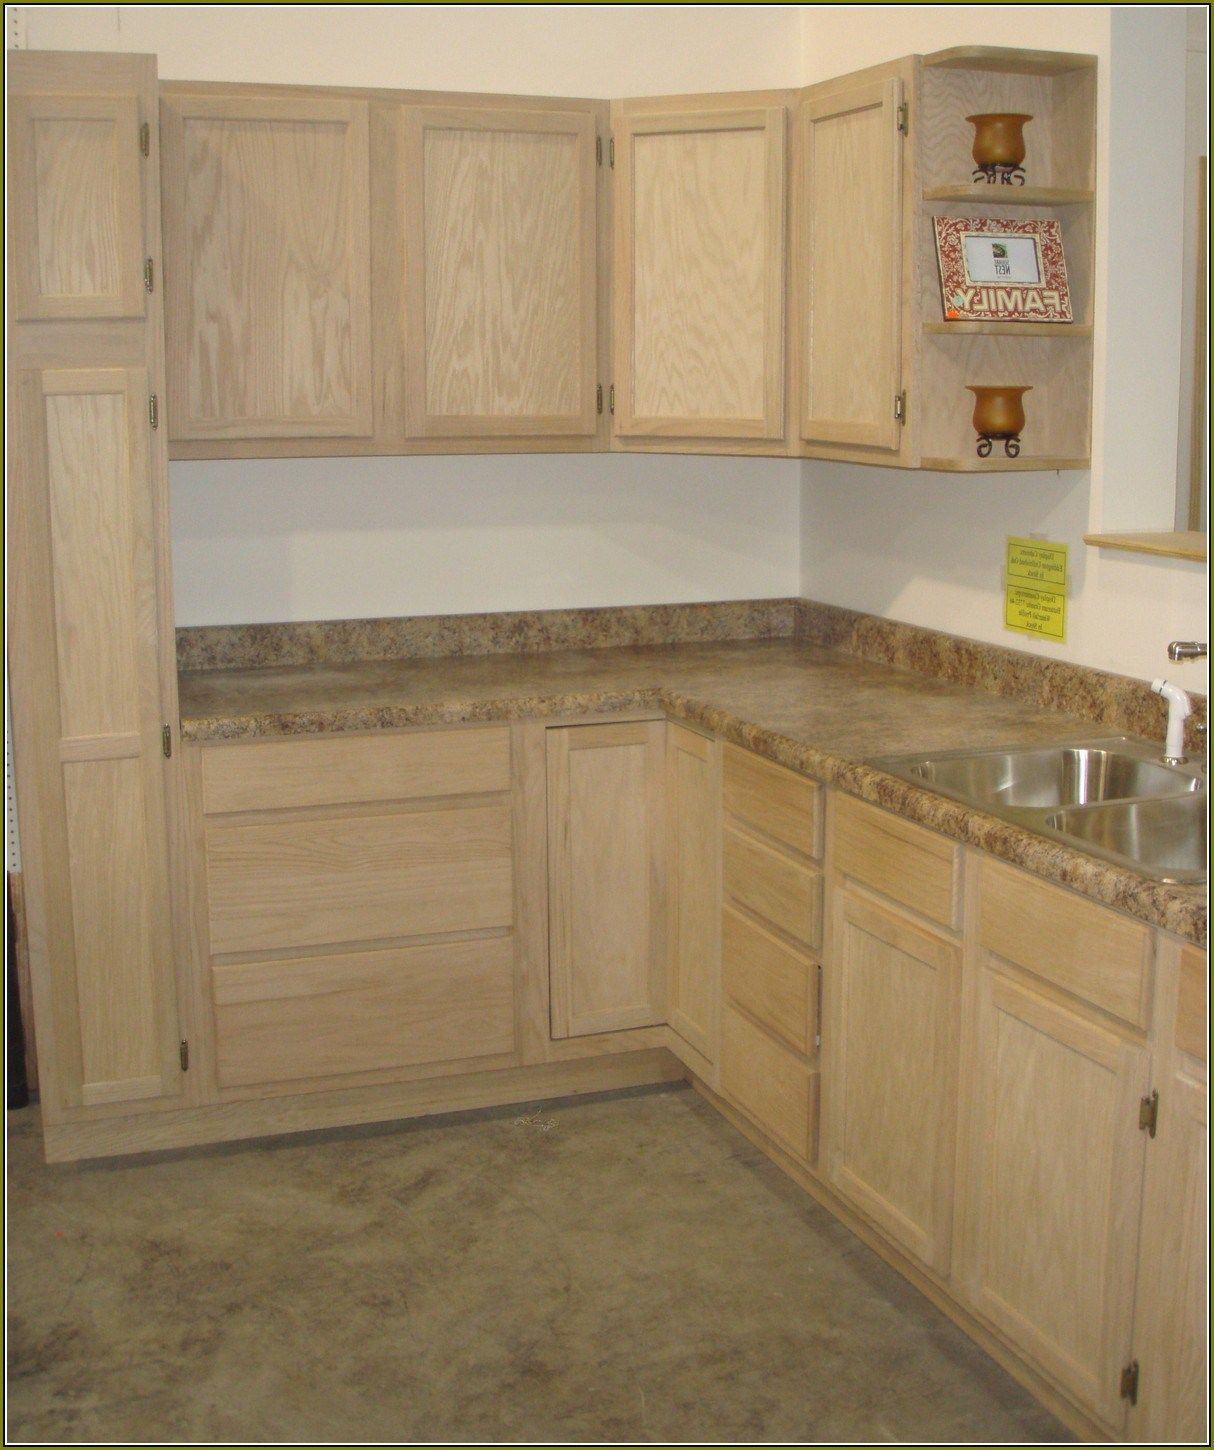 Home Improvements Refference Unfinished Pine Cabinets Home Depot Interesting Kitchen Cabinets Home Depot 2018